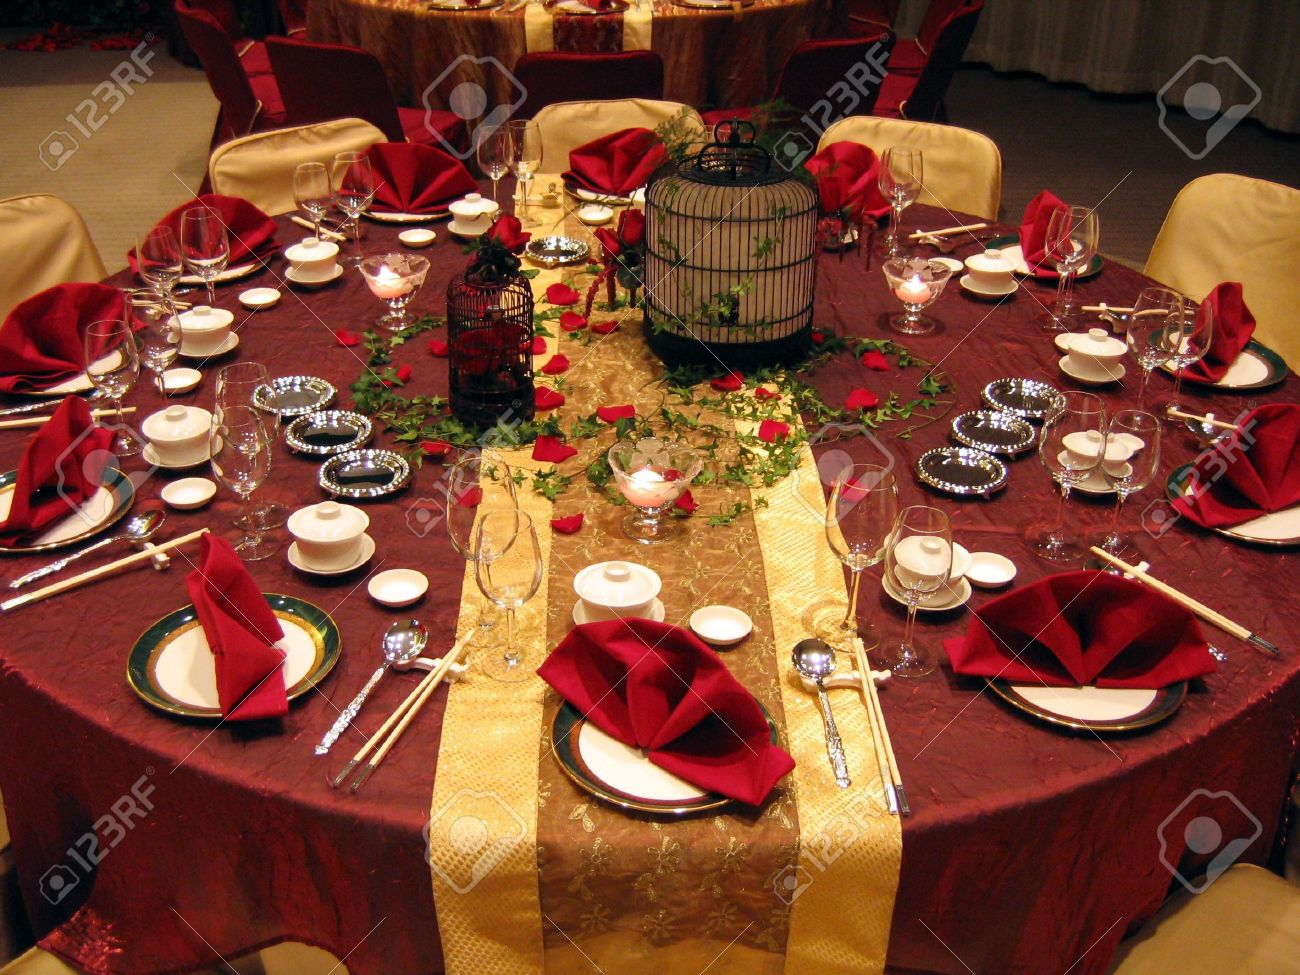 Chinese wedding banquet table setting Stock Photo - 586094 & Chinese Wedding Banquet Table Setting Stock Photo Picture And ...